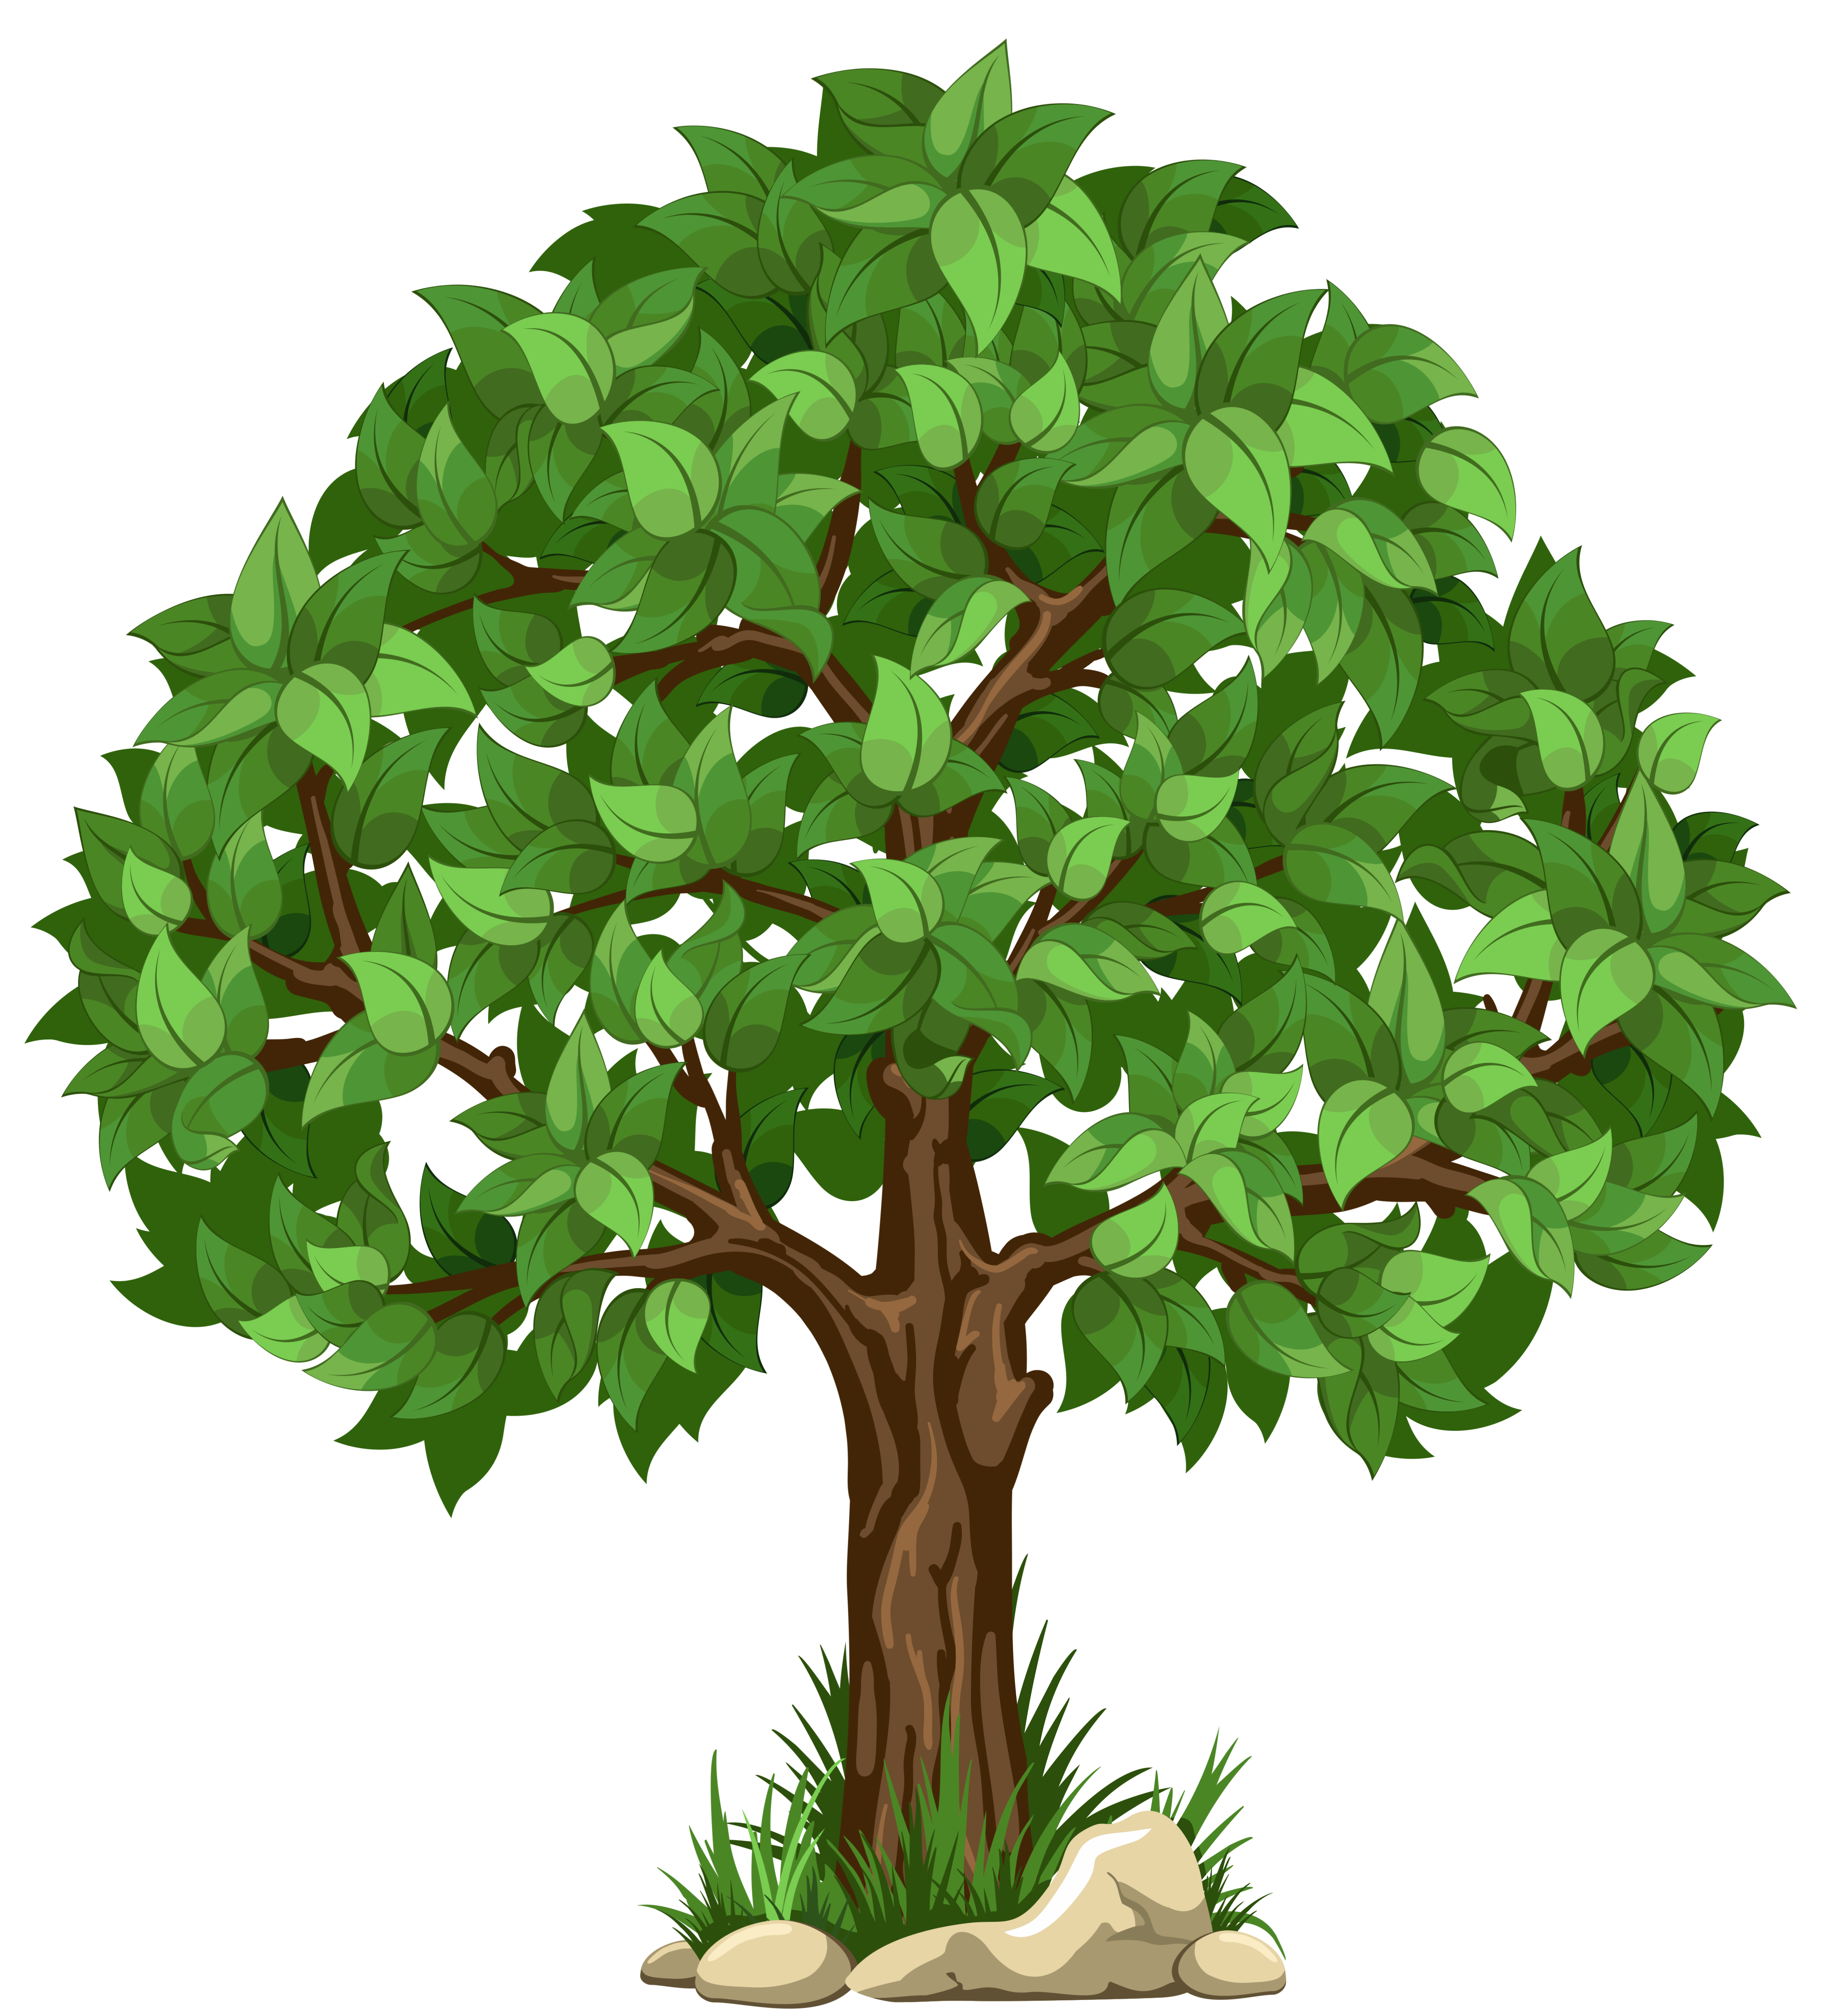 Background trees png. Tree no encode clipart